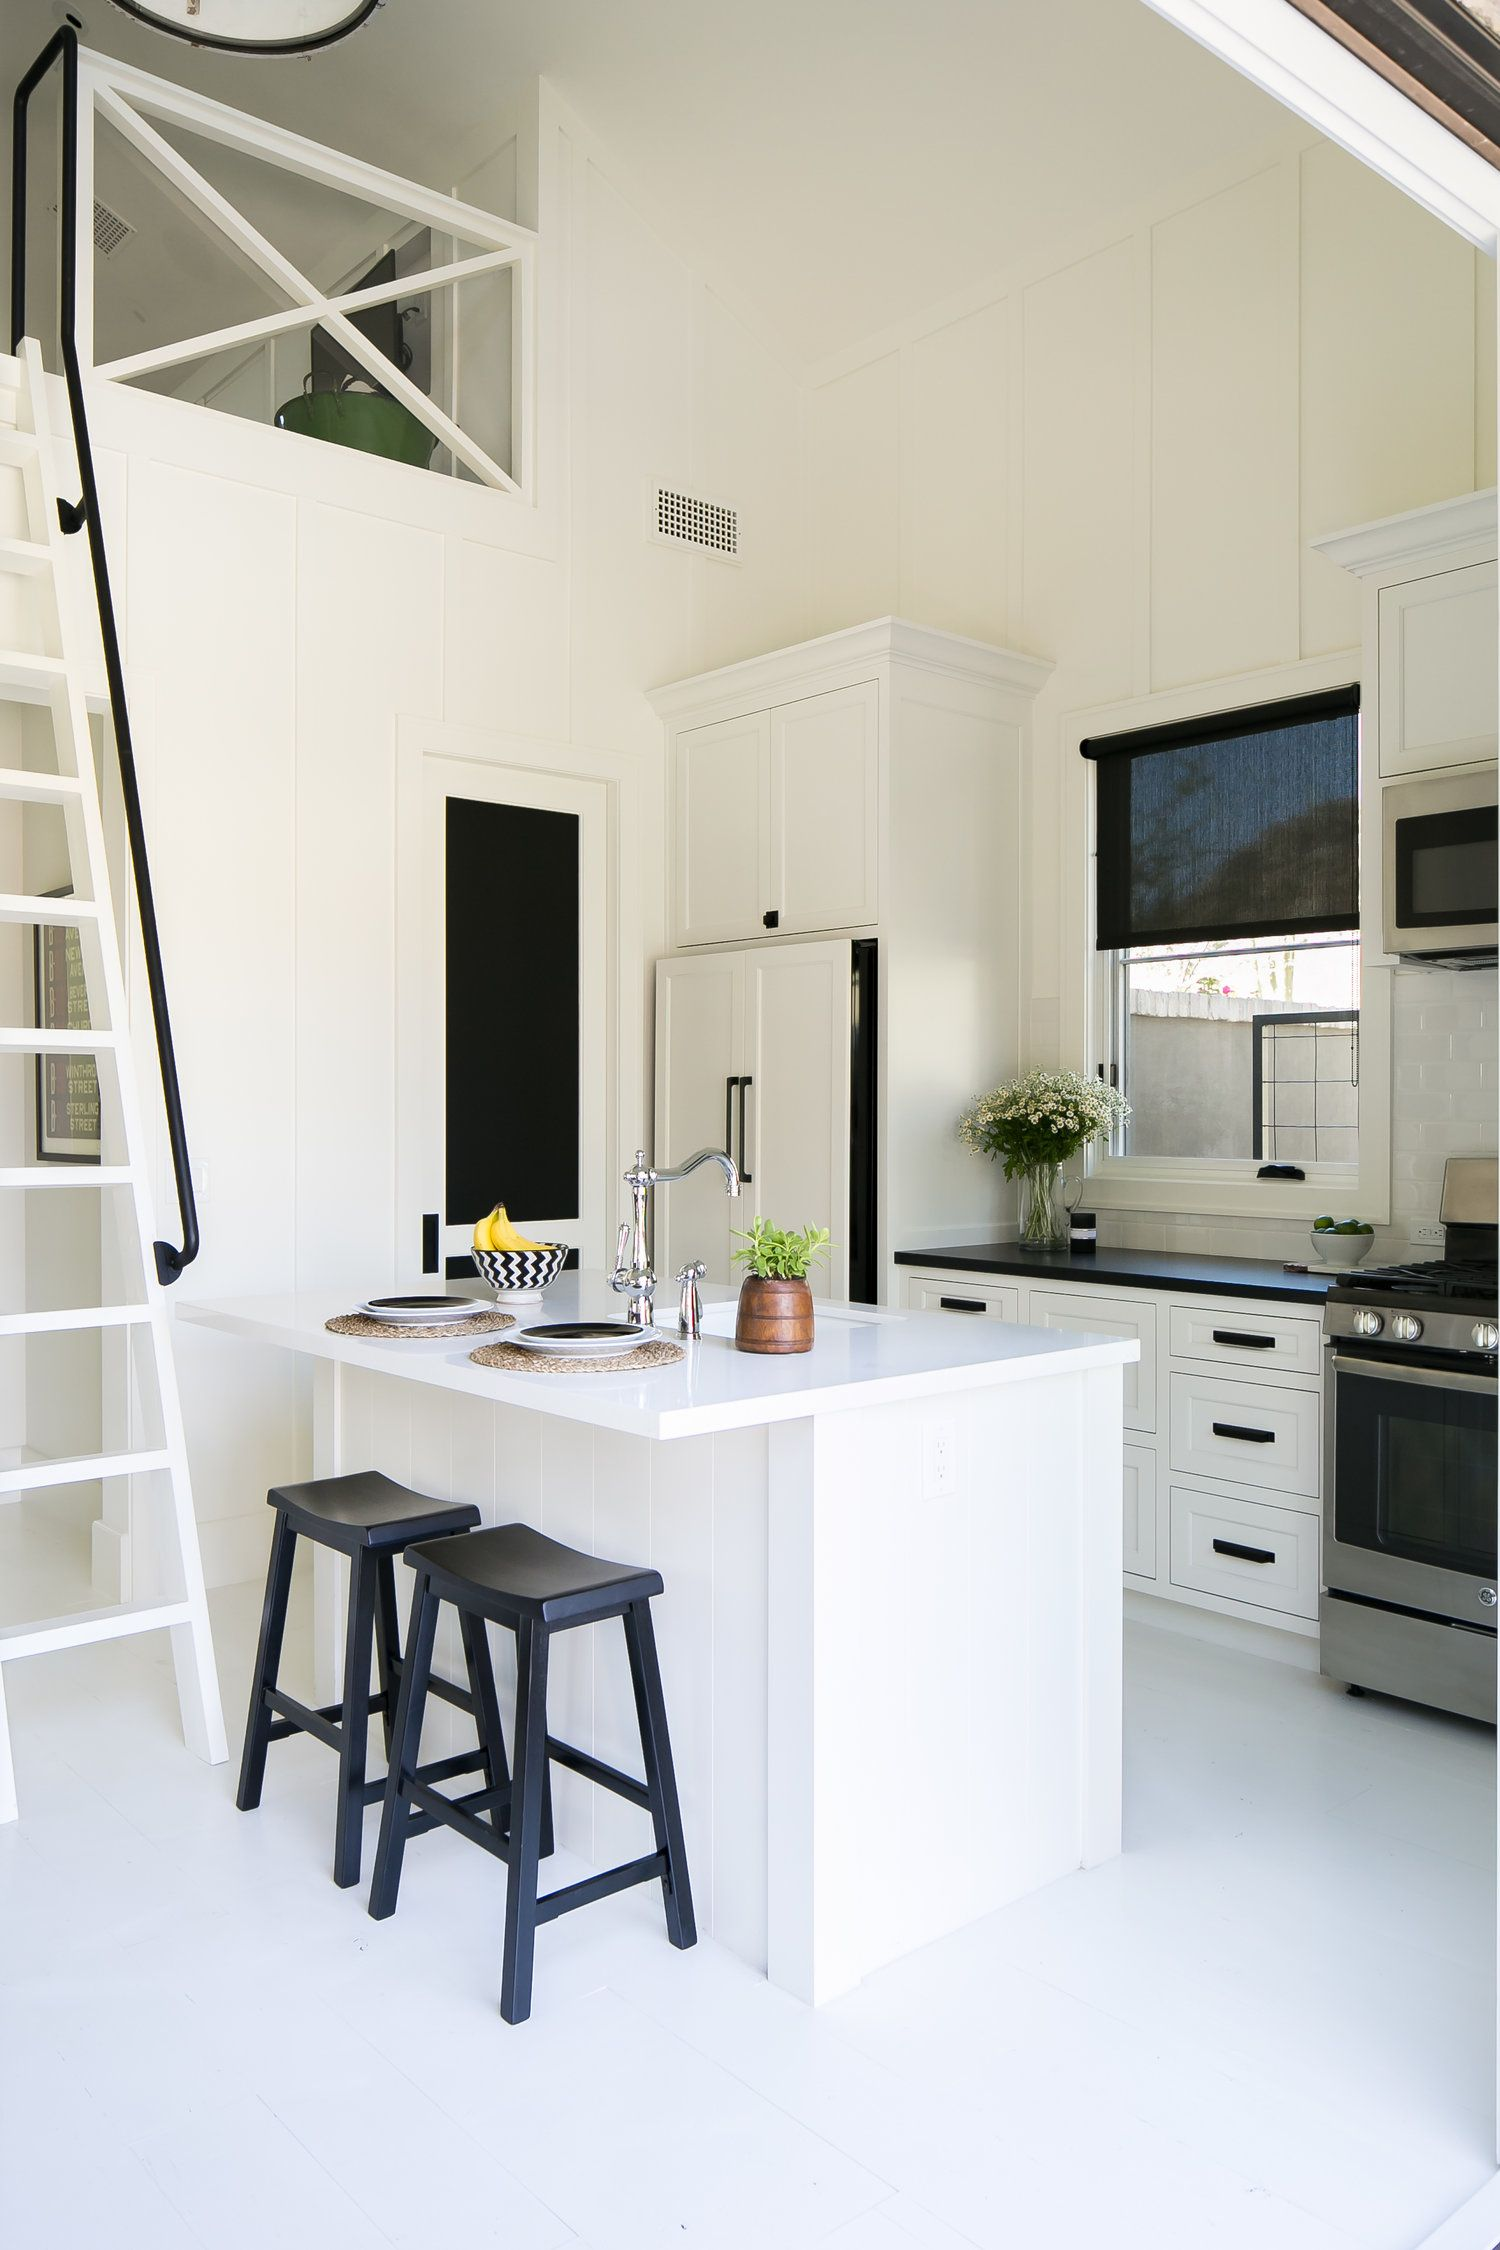 Pin by nicole diller on Kitchens-White | Dunn edwards ...